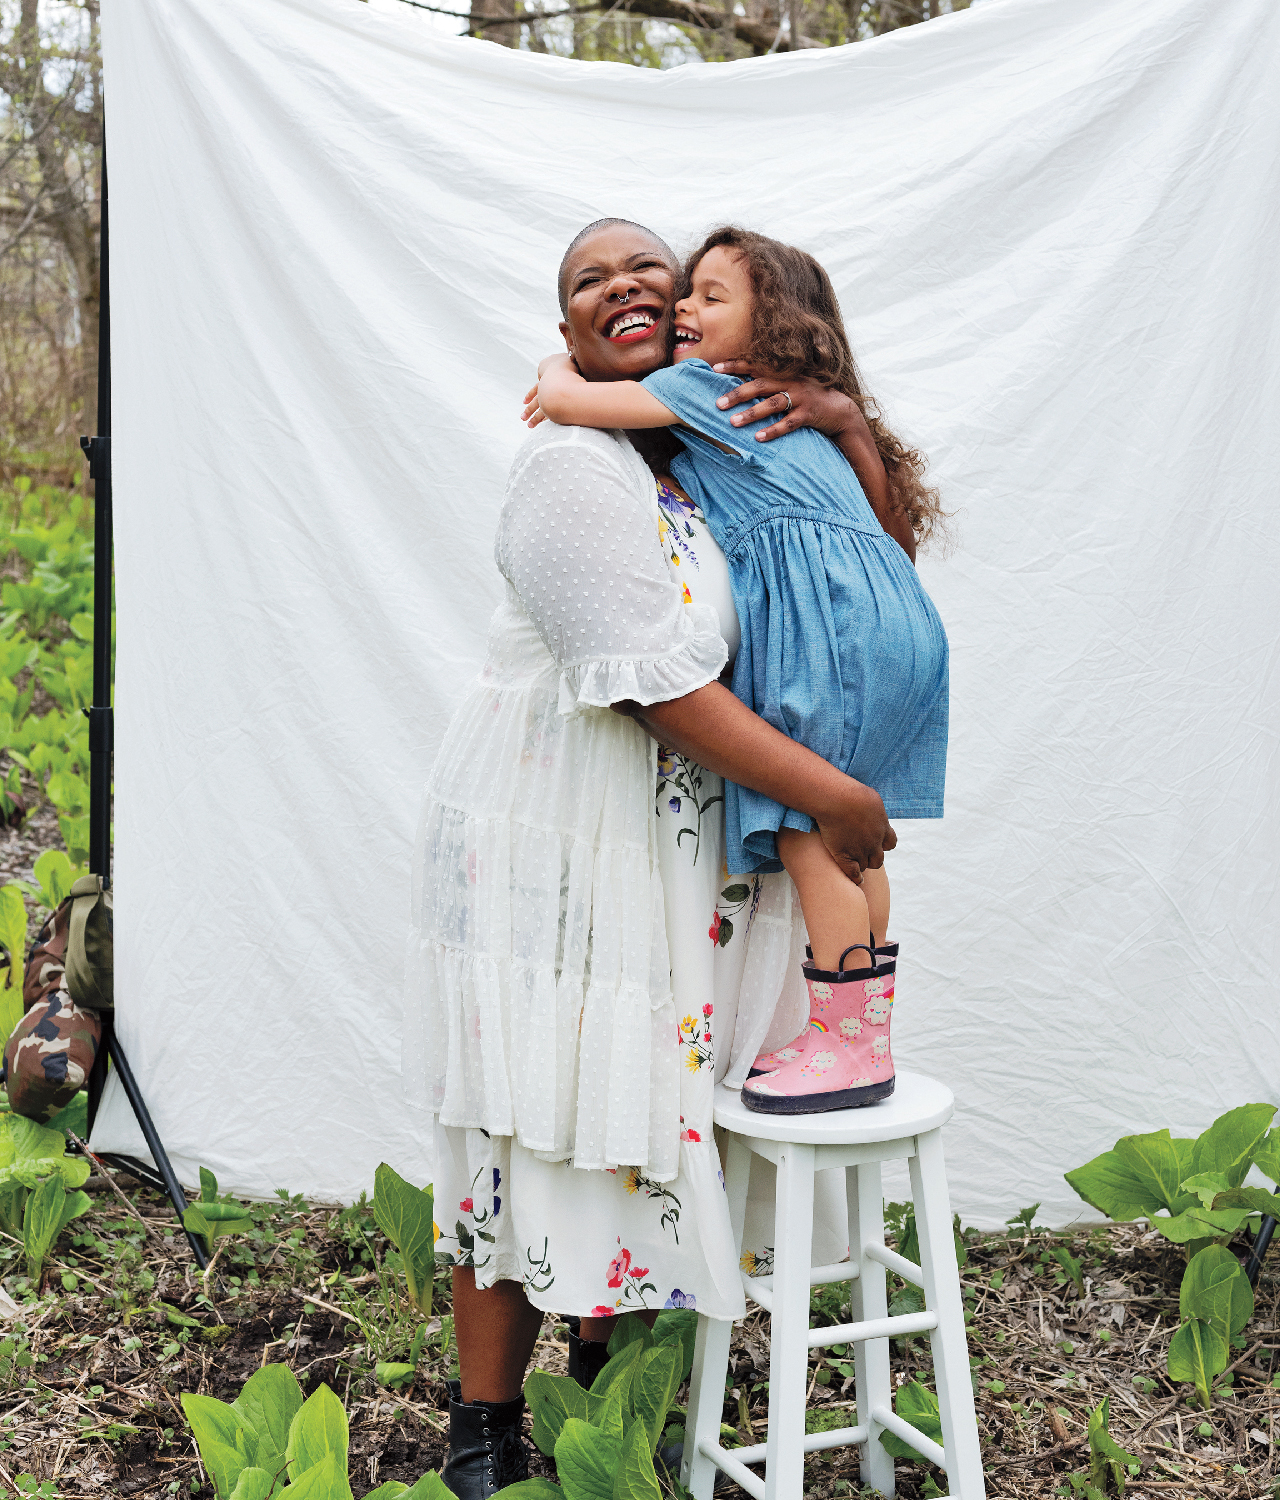 a mother hugs her preschooler, who is standing on a stool